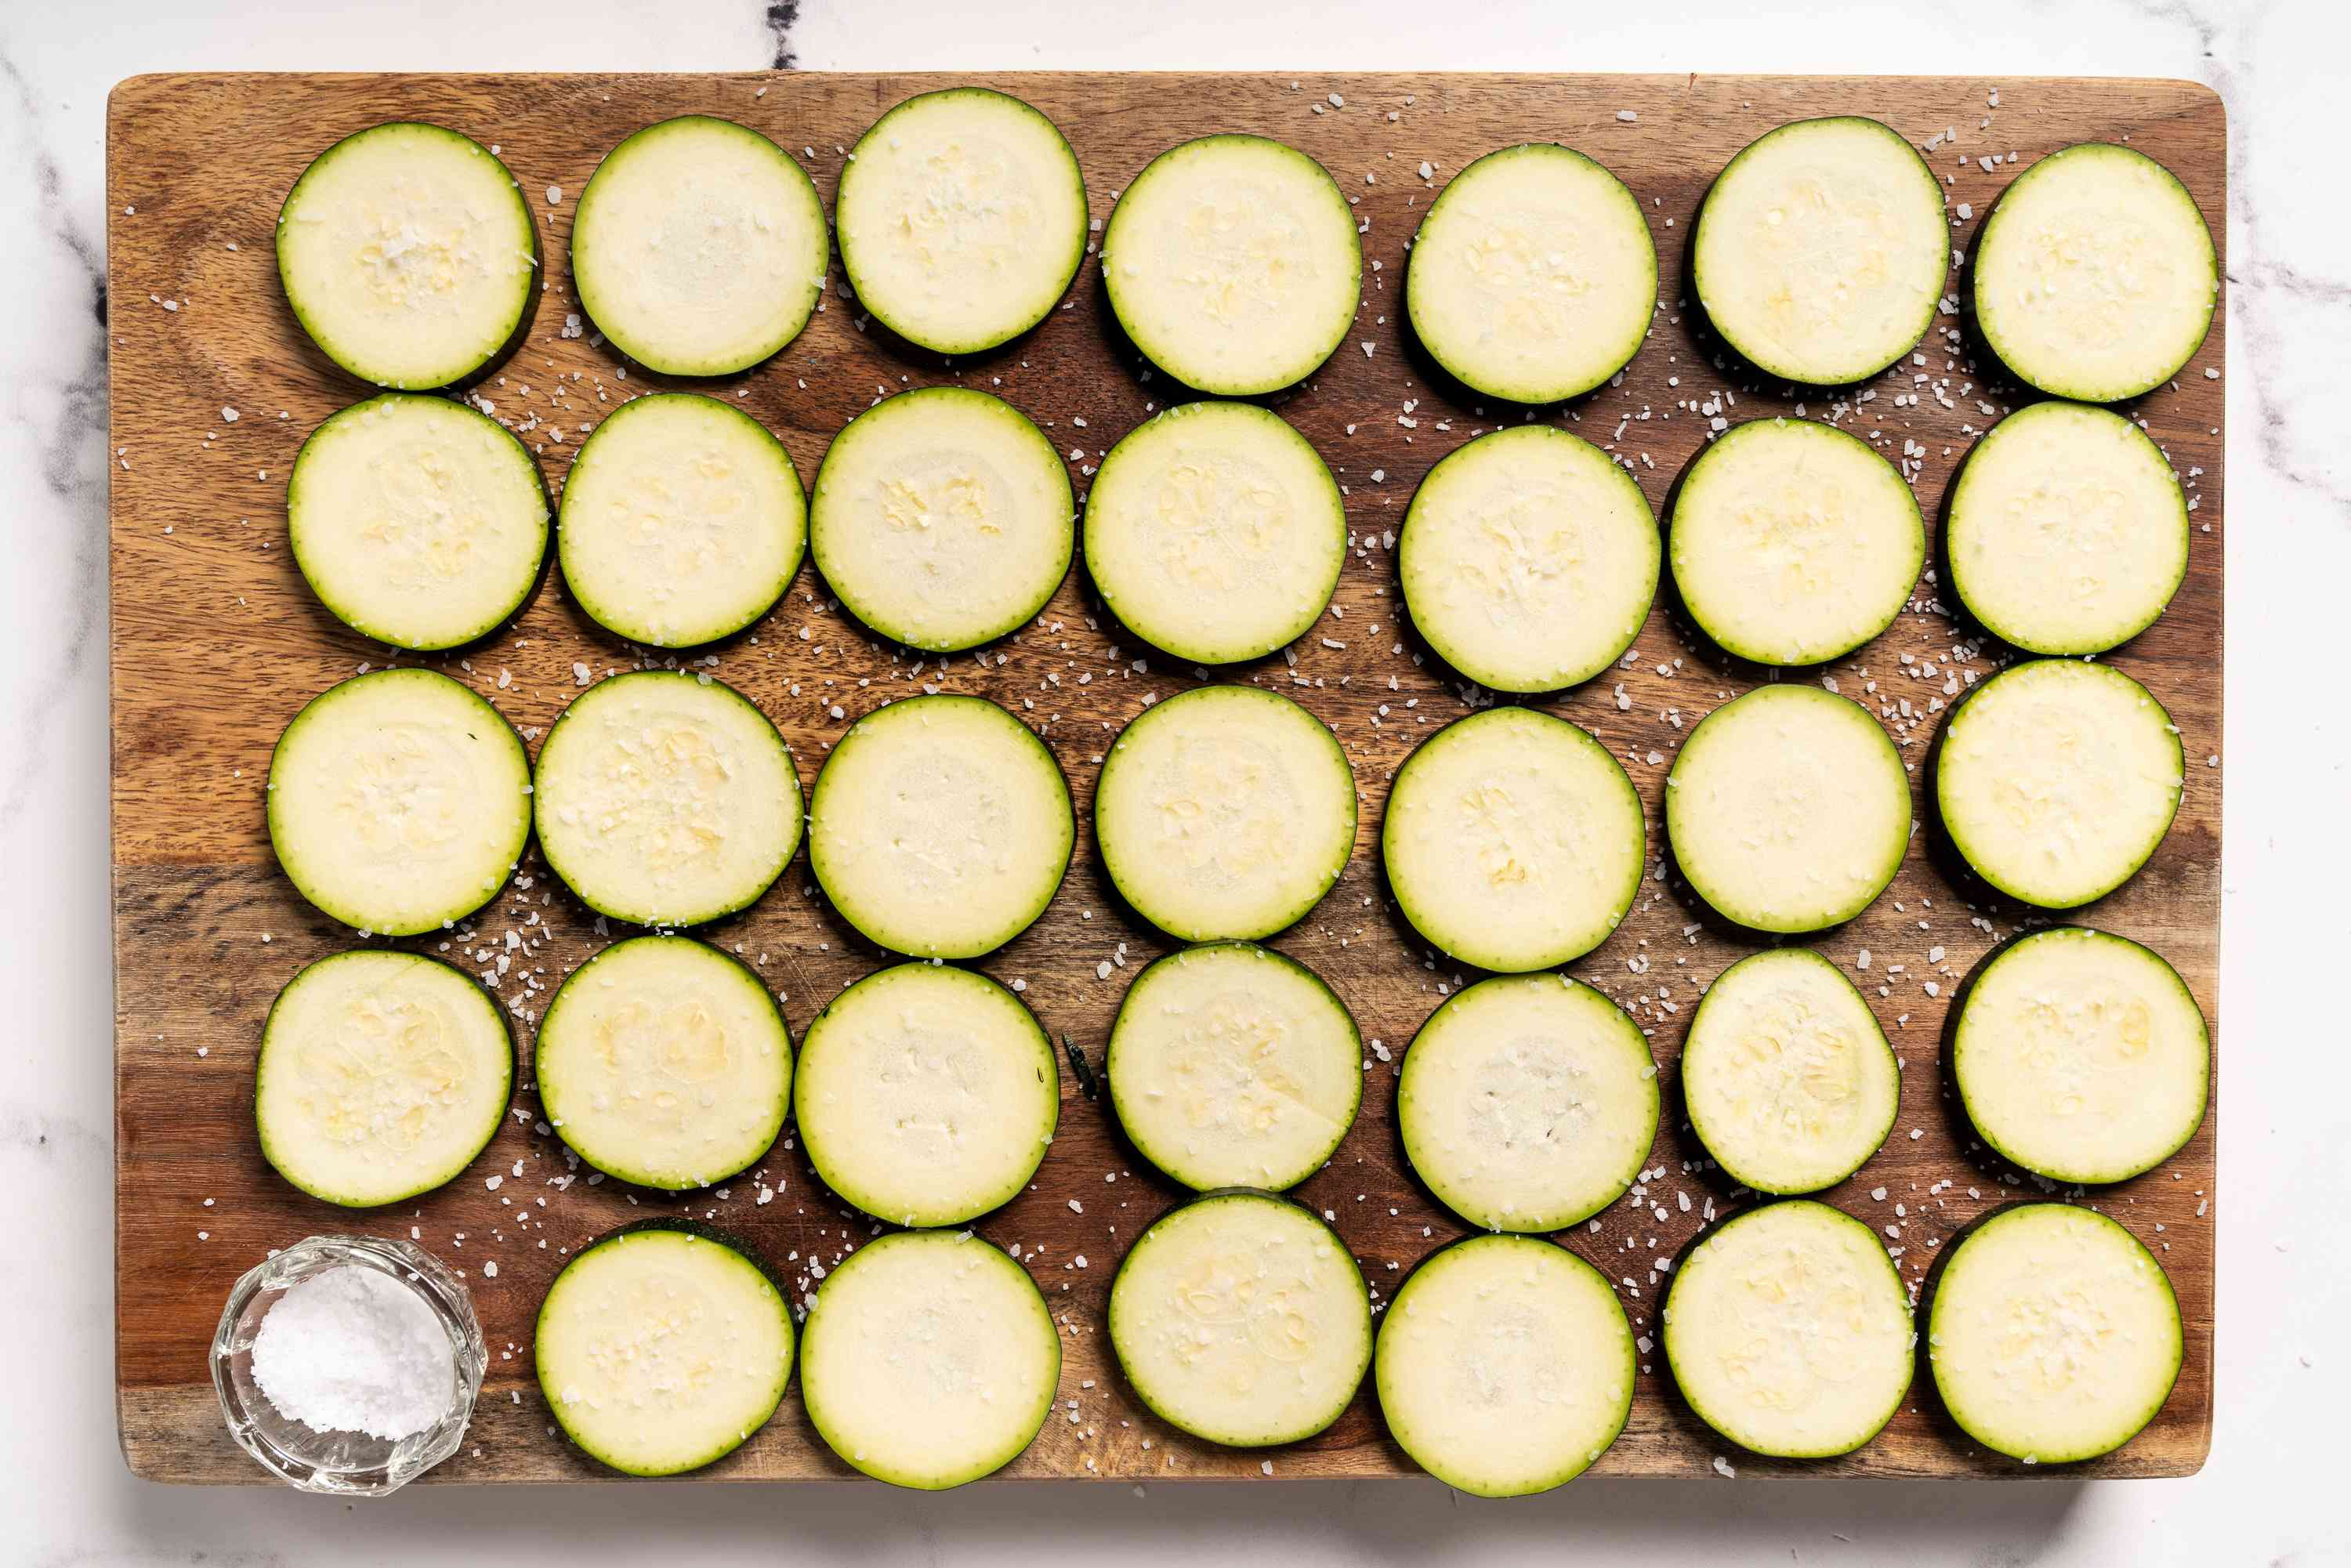 Zucchini slices sprinkled with salt